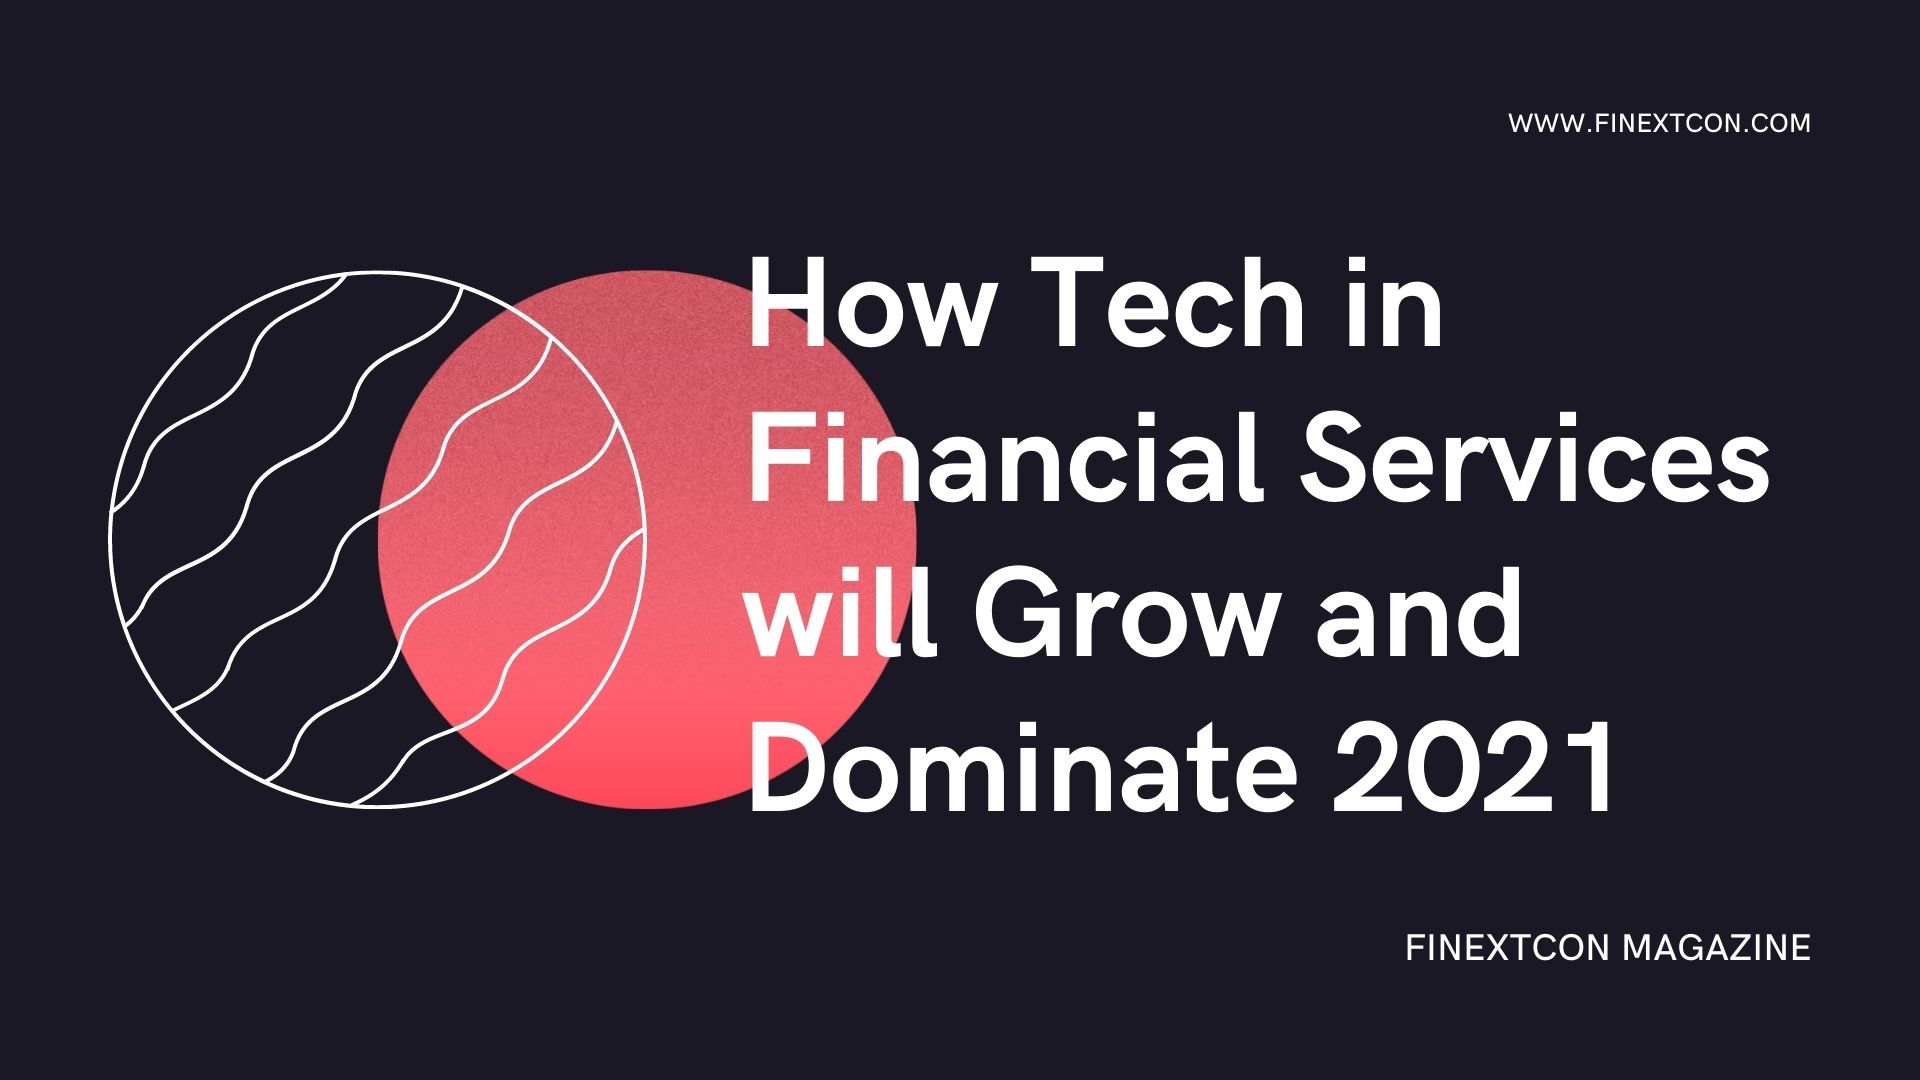 How FinTech Services will Grow and Dominate 2021